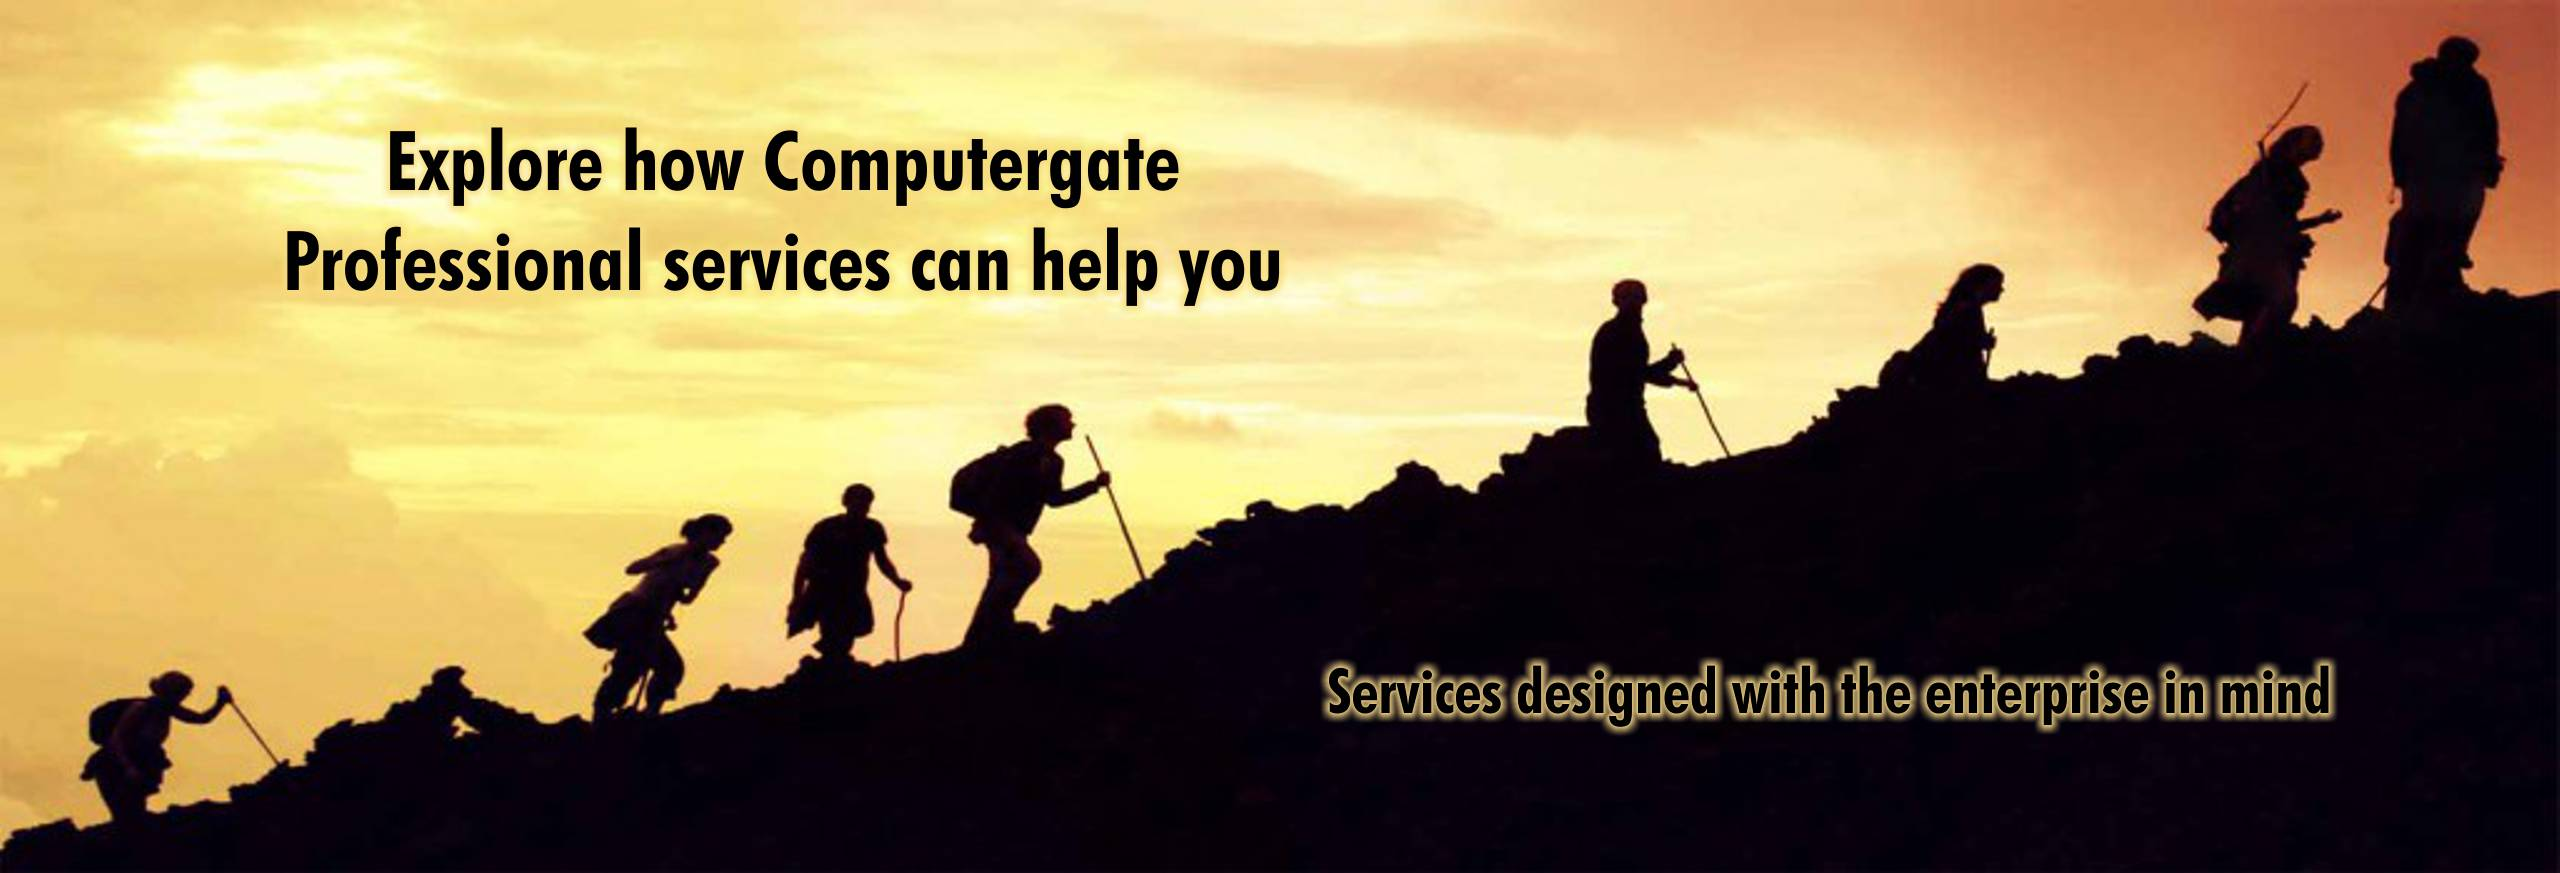 professional-services-page-banner-2-2560-x-873